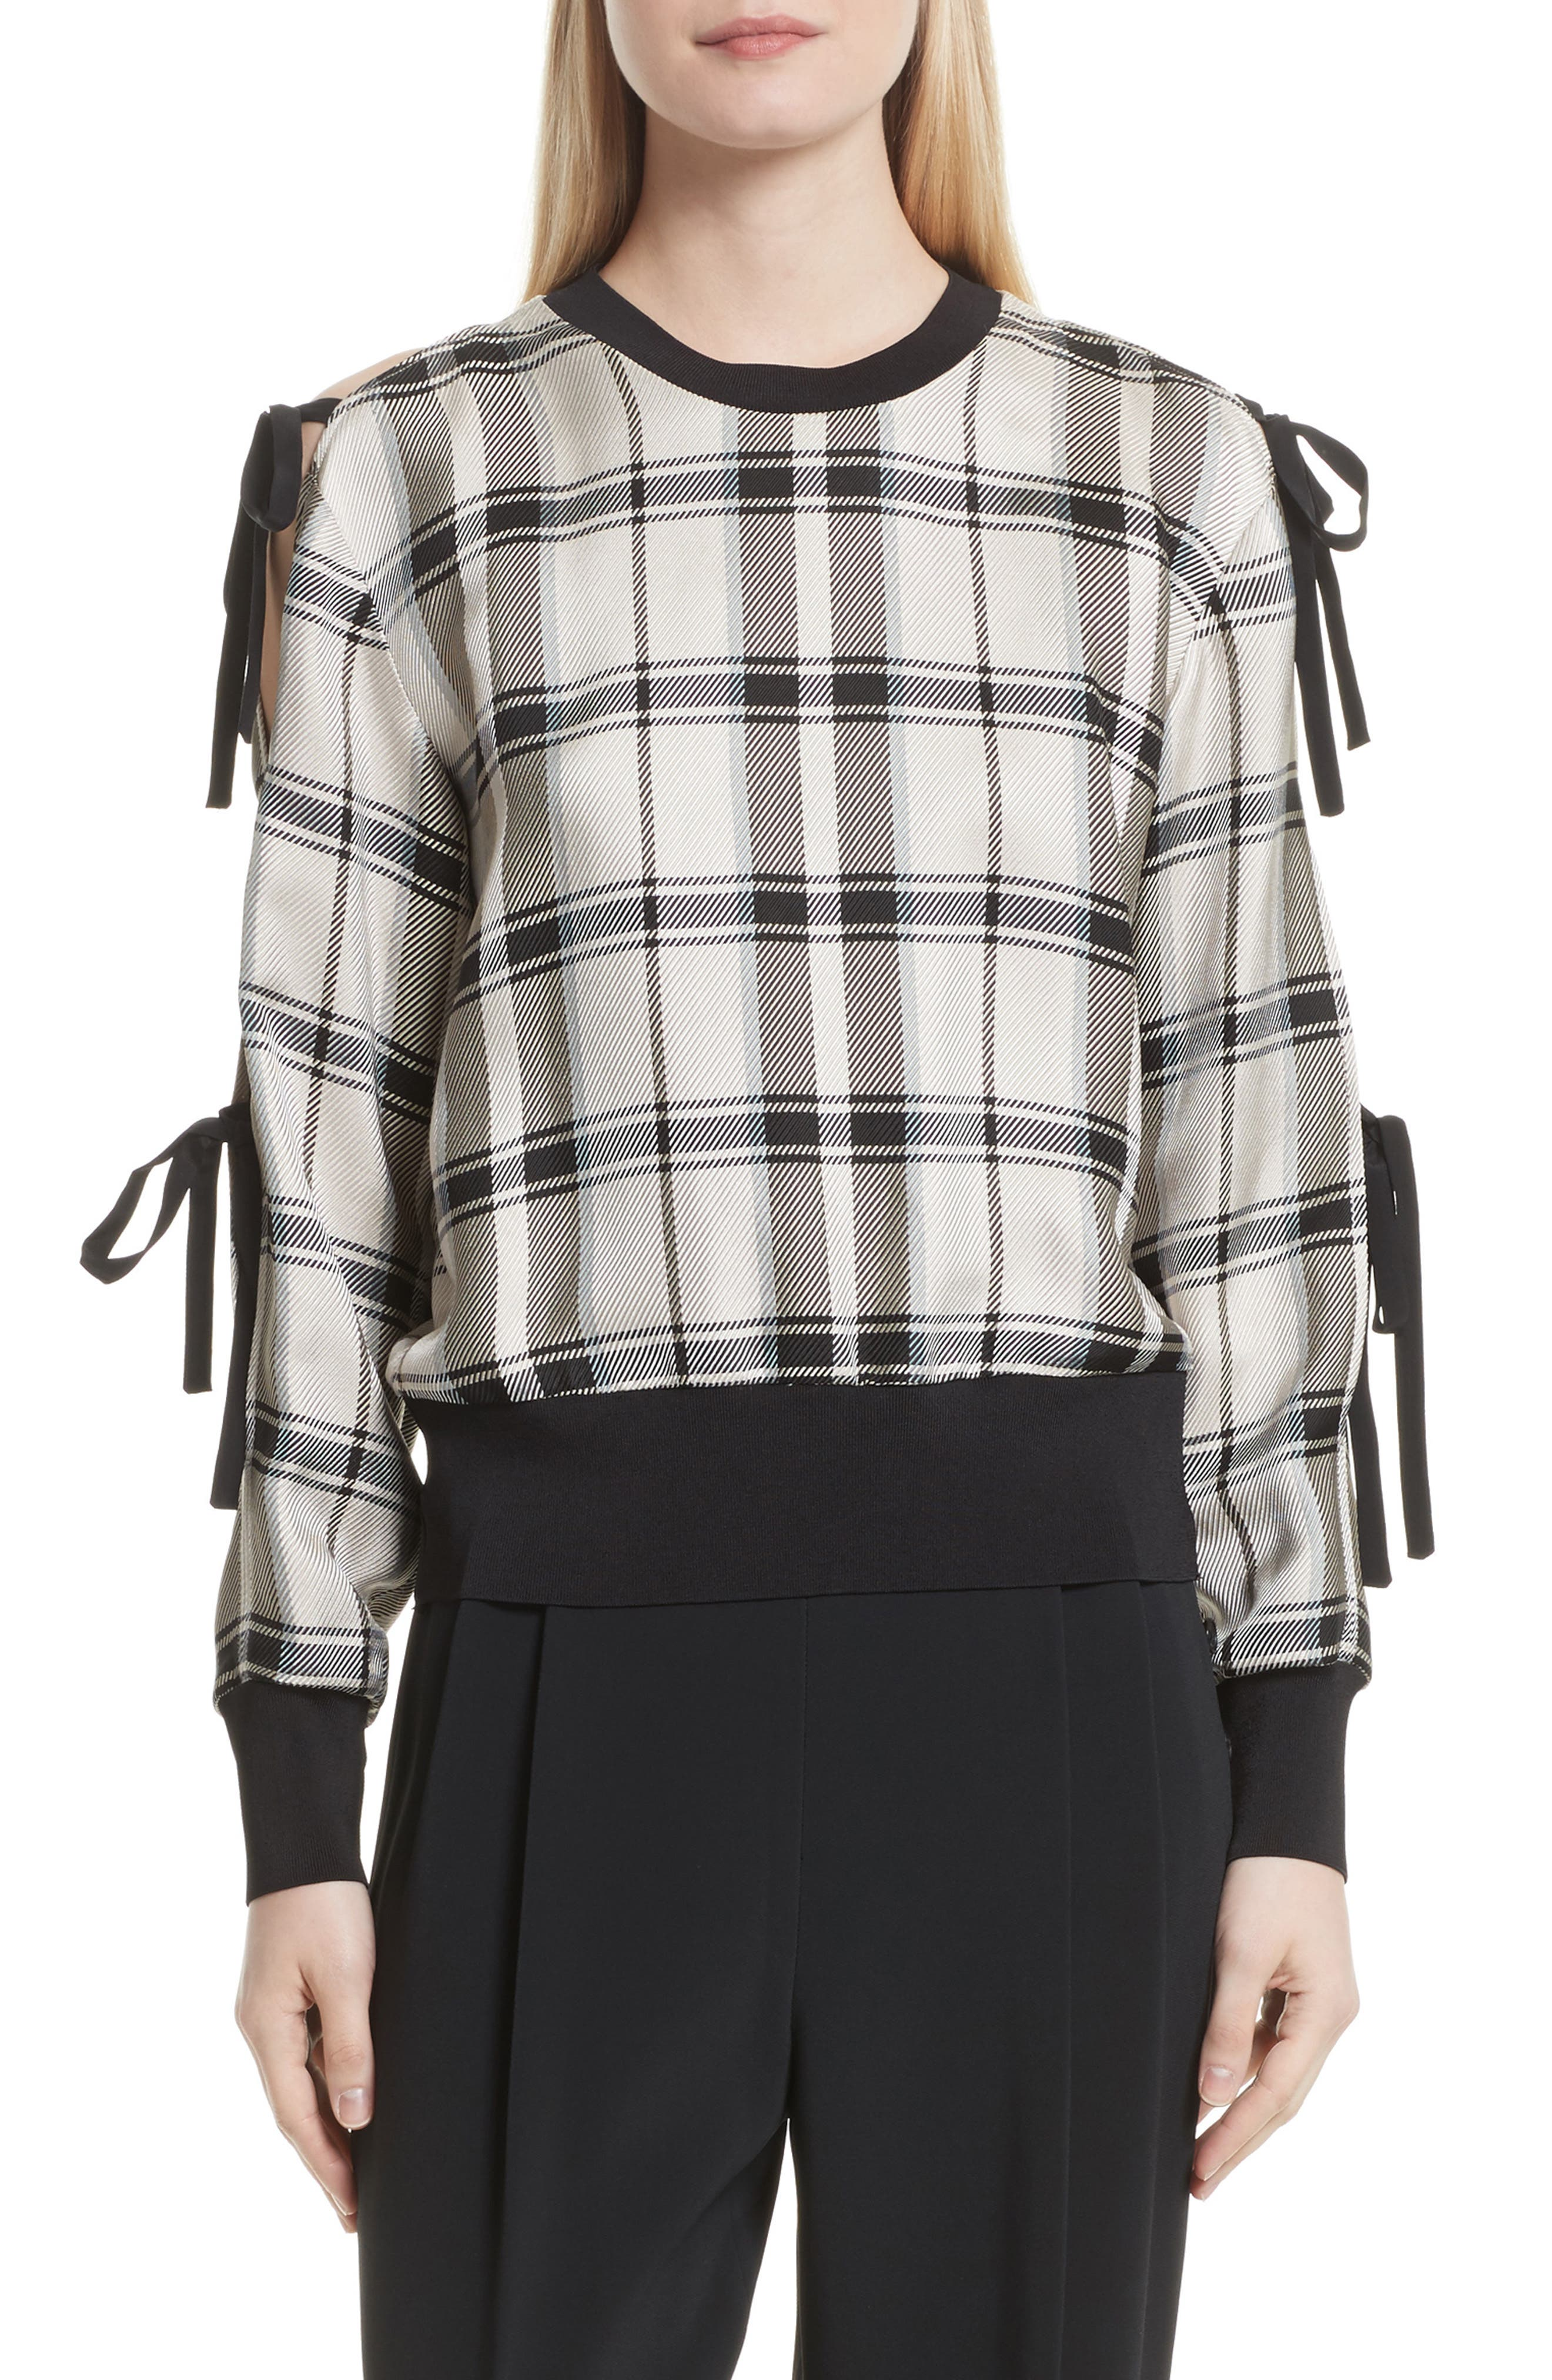 3.1 Phillip Lim Tie Sleeve Check Pullover